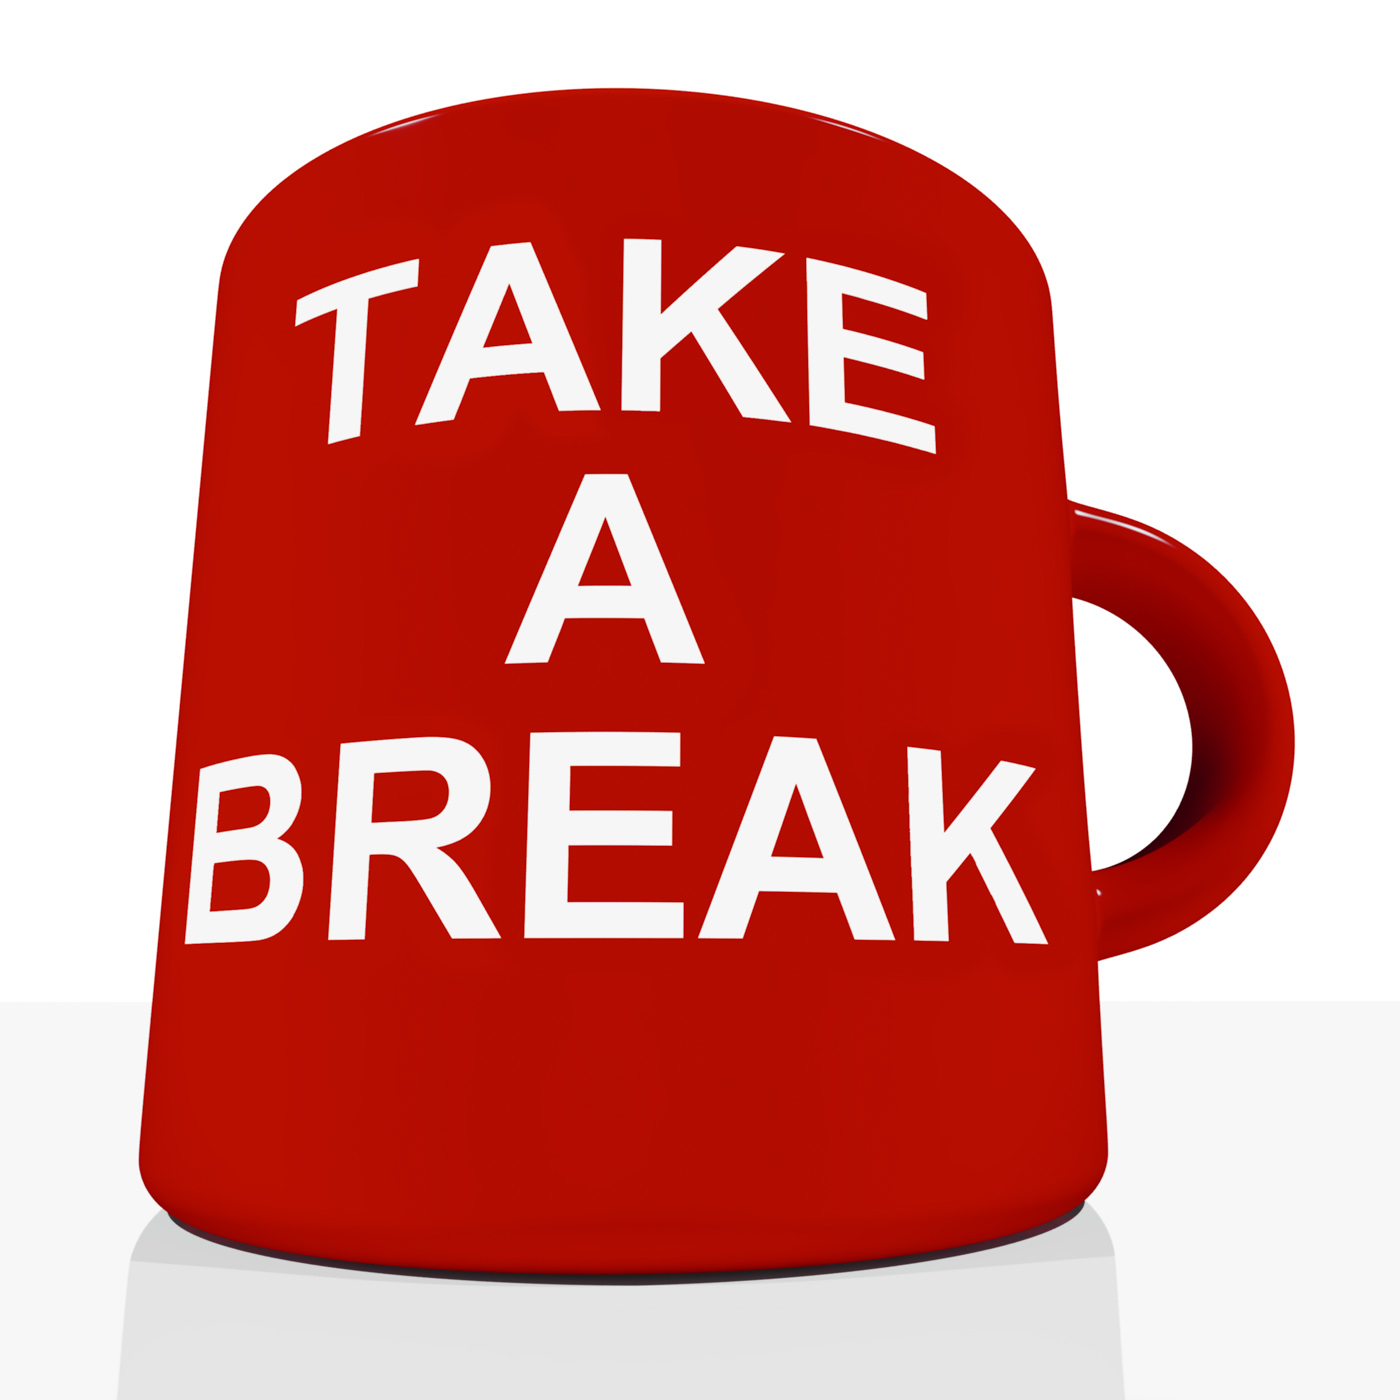 Take a break mug showing relaxing and tiredness photo